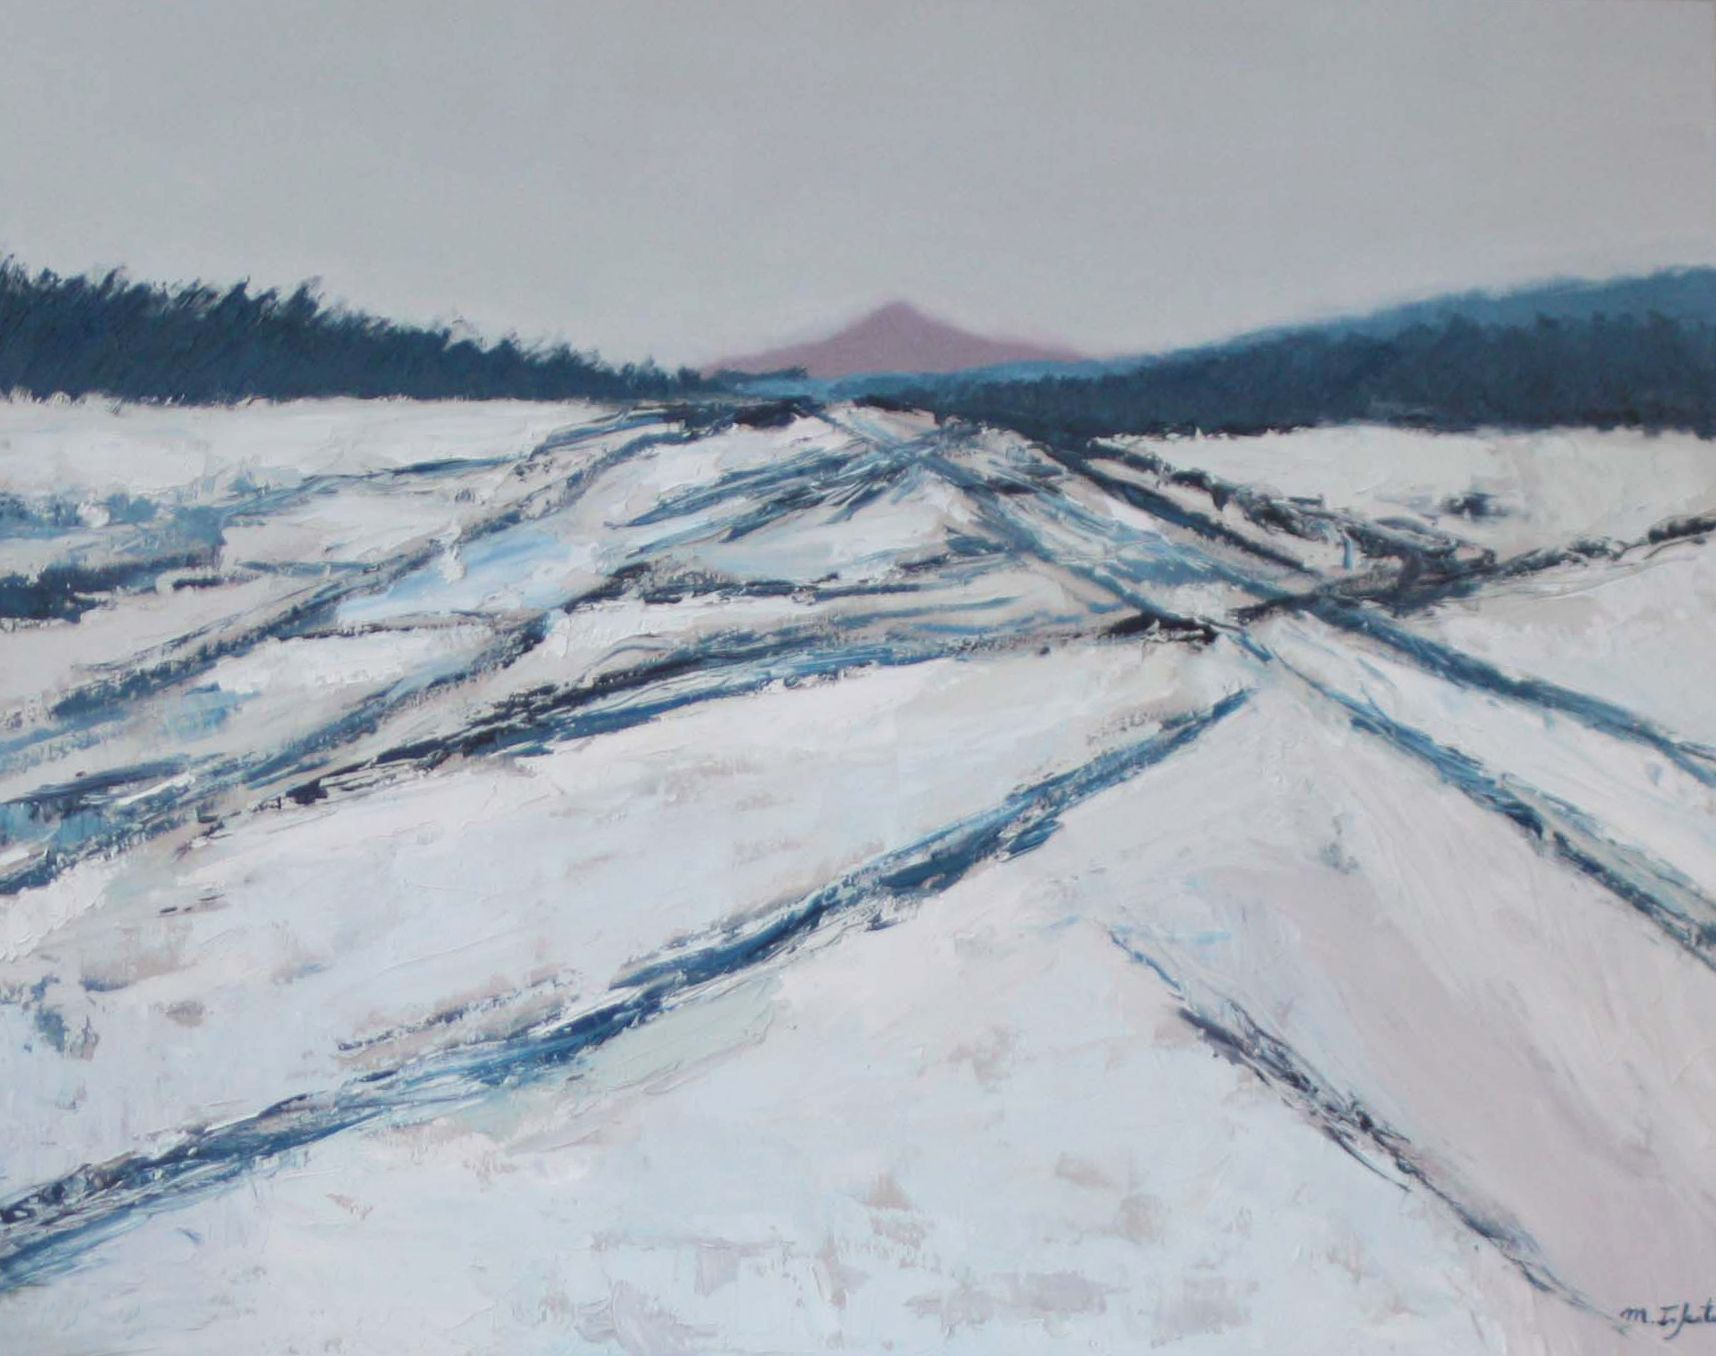 Snowy Landscape Mountain Landscape Abstract Landscape Mountain Landscape Landscape